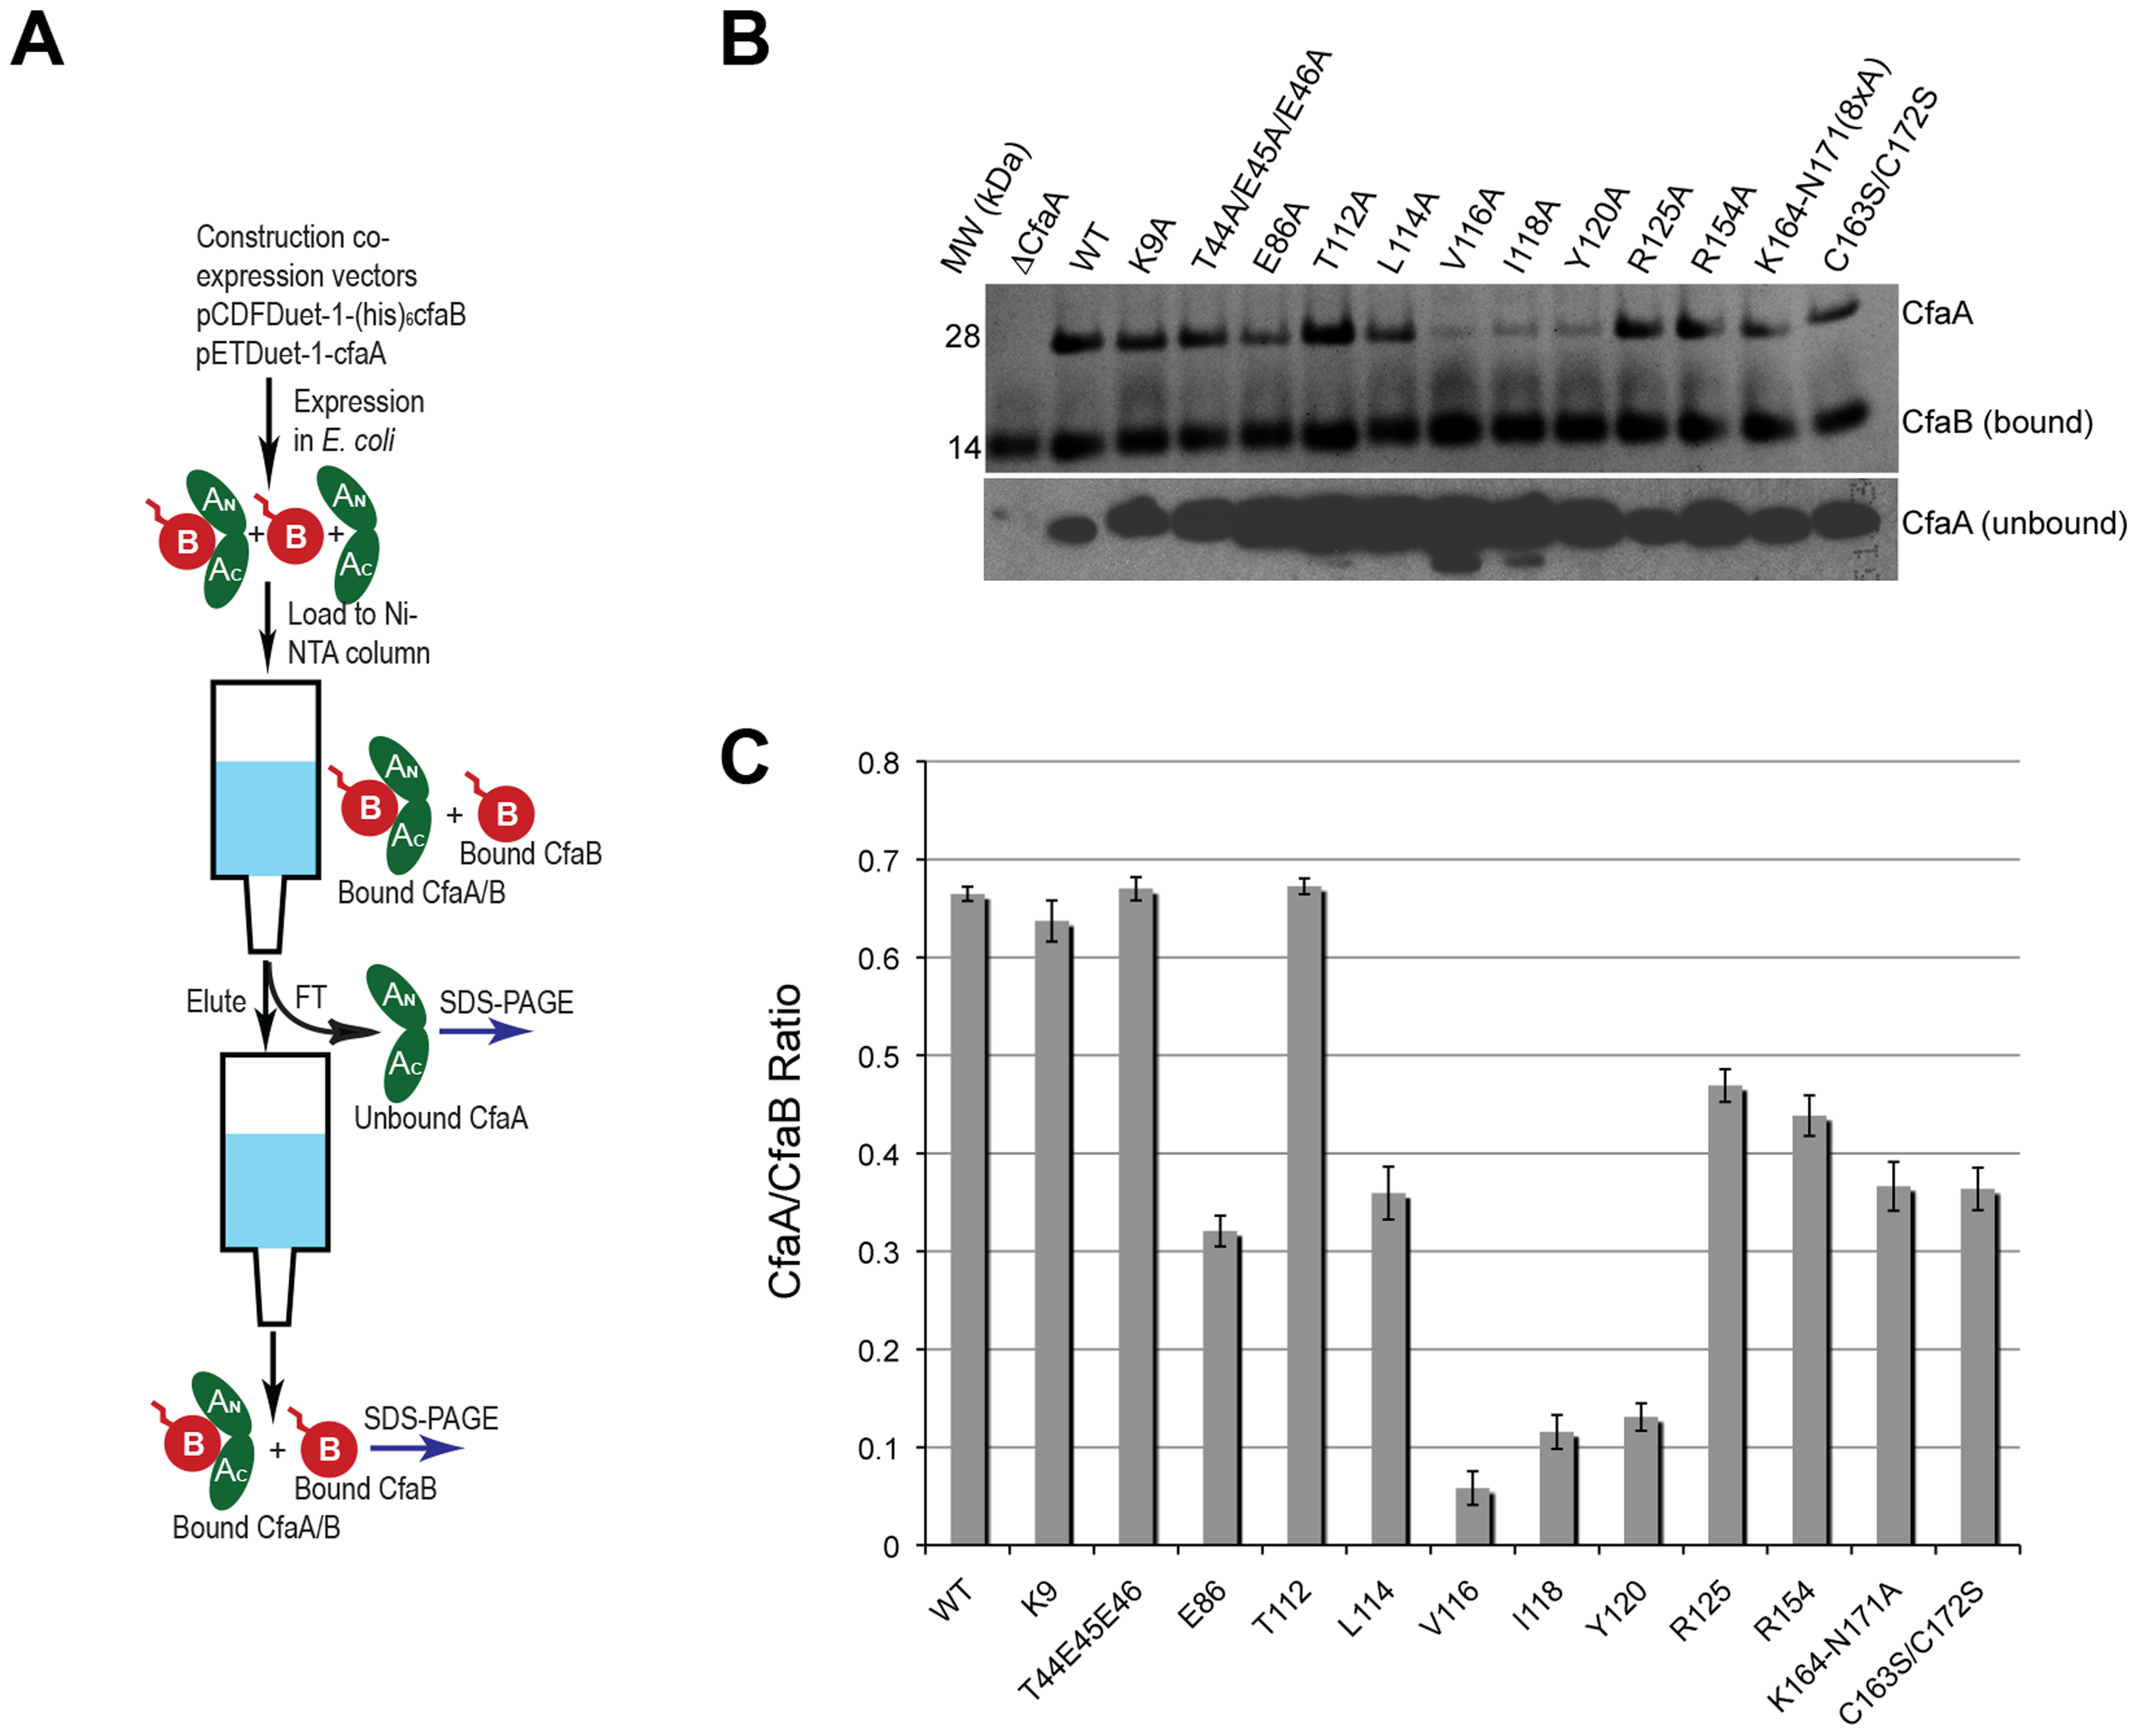 Characterization of CfaA mutants in forming complex with CfaB.